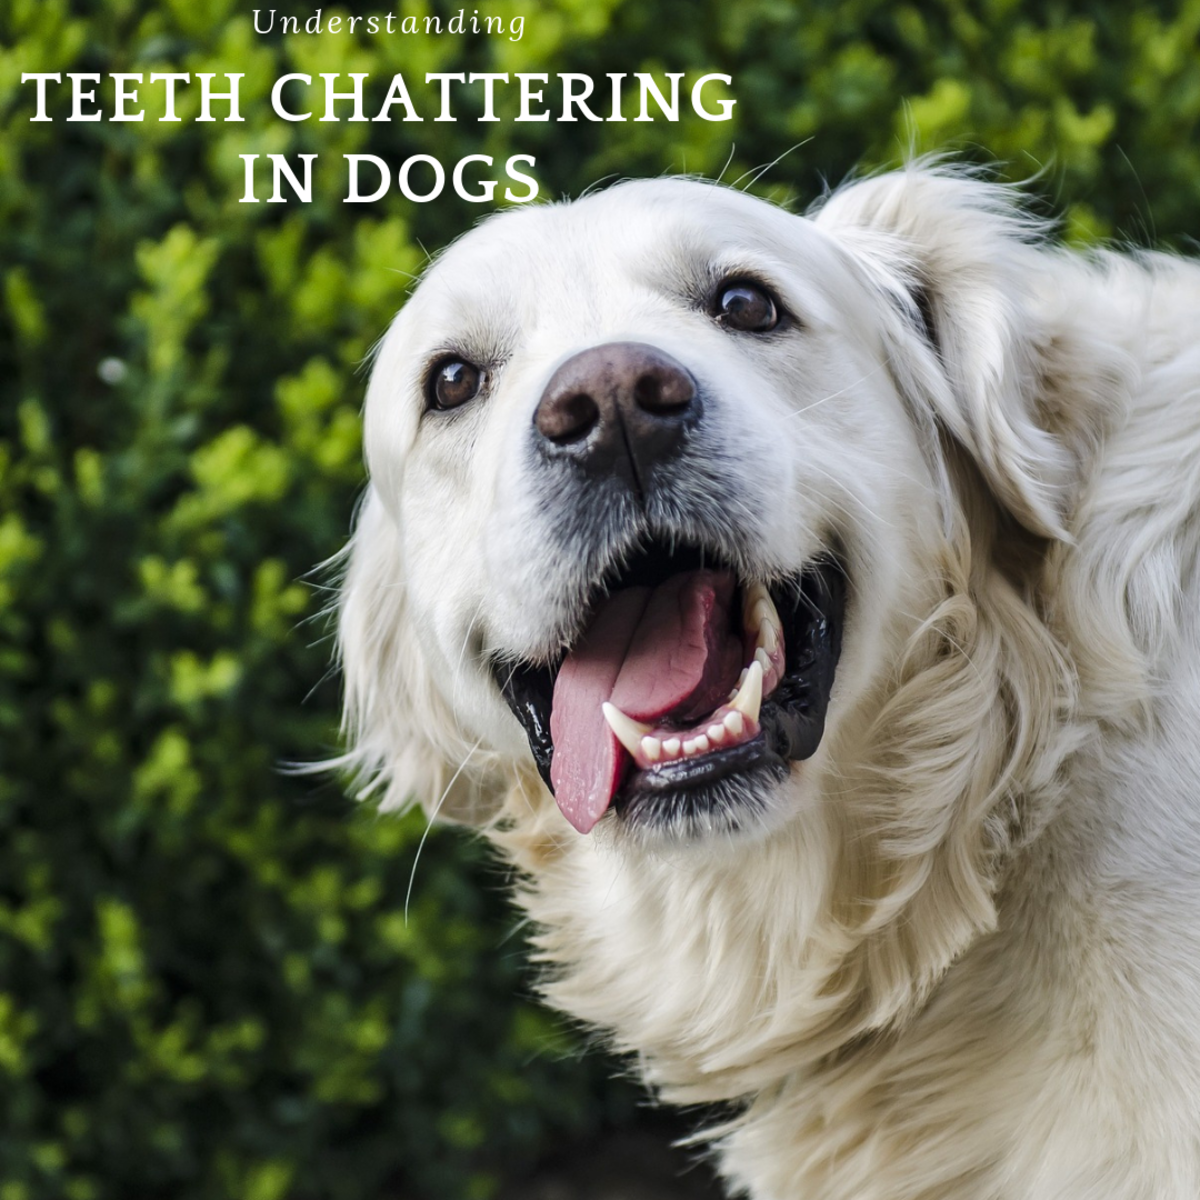 Understanding Your Dog's Teeth Chattering